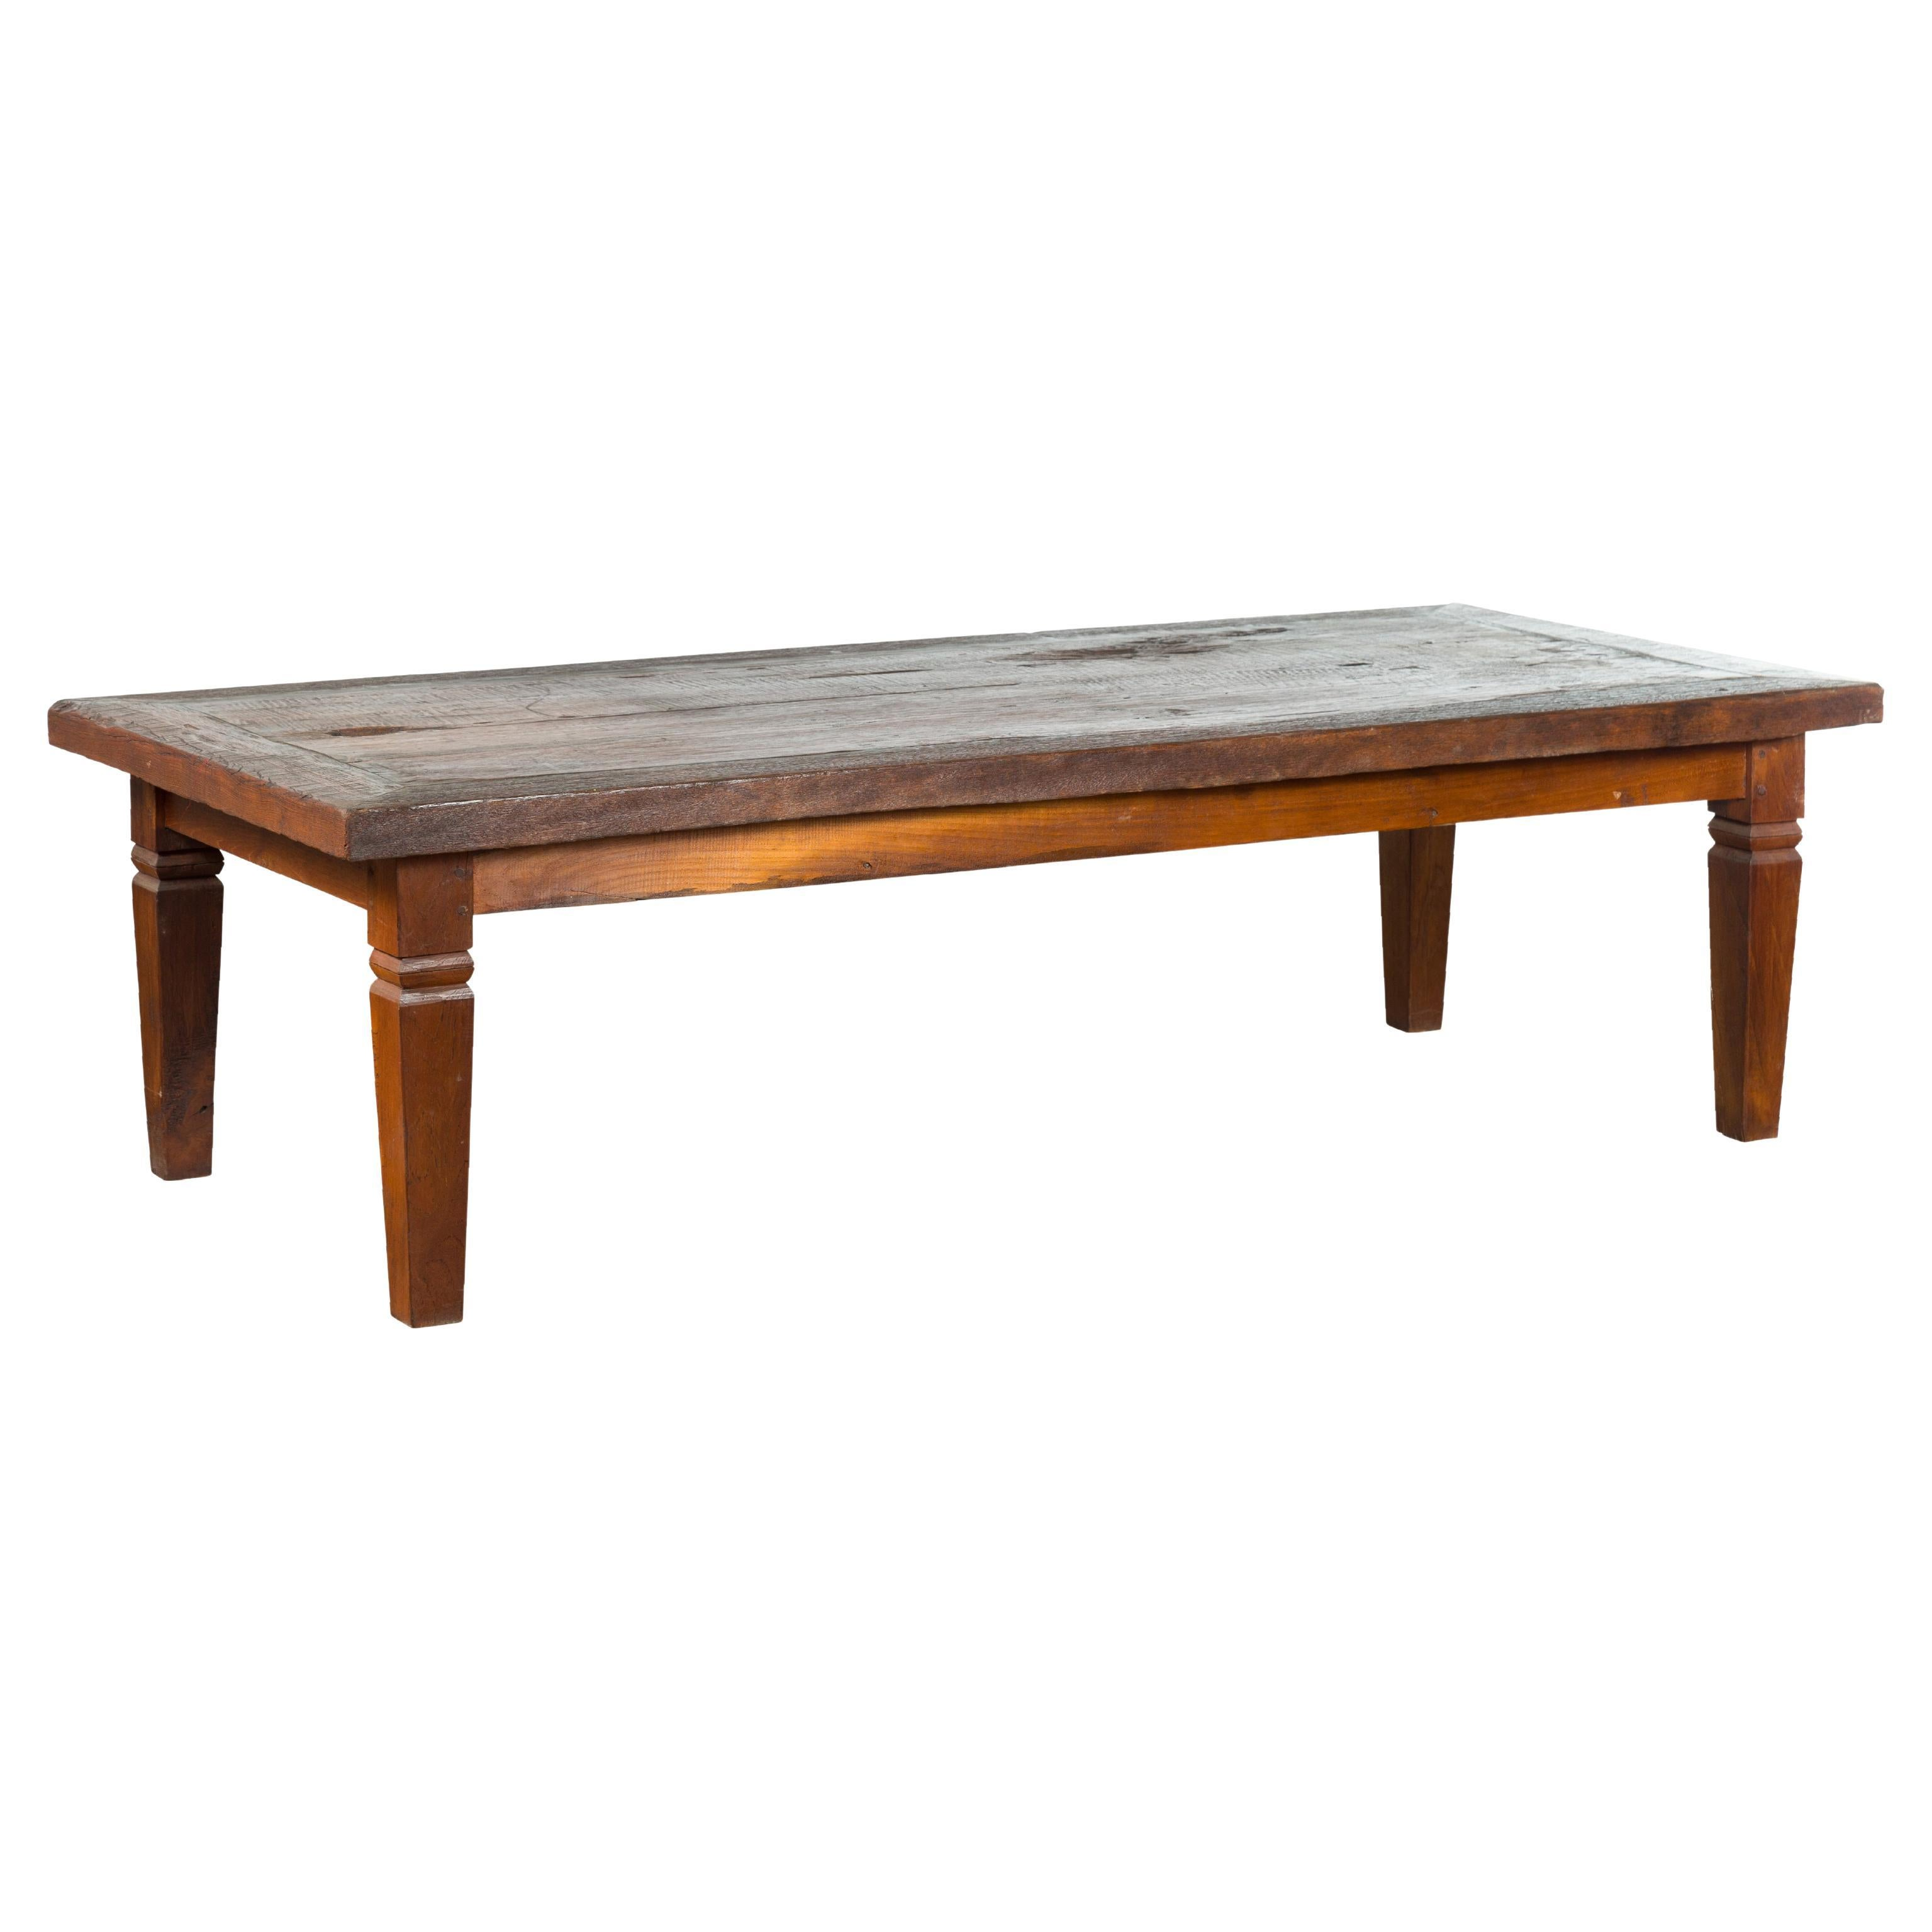 Rustic Indonesian 19th Century Coffee Table with Tapered Legs